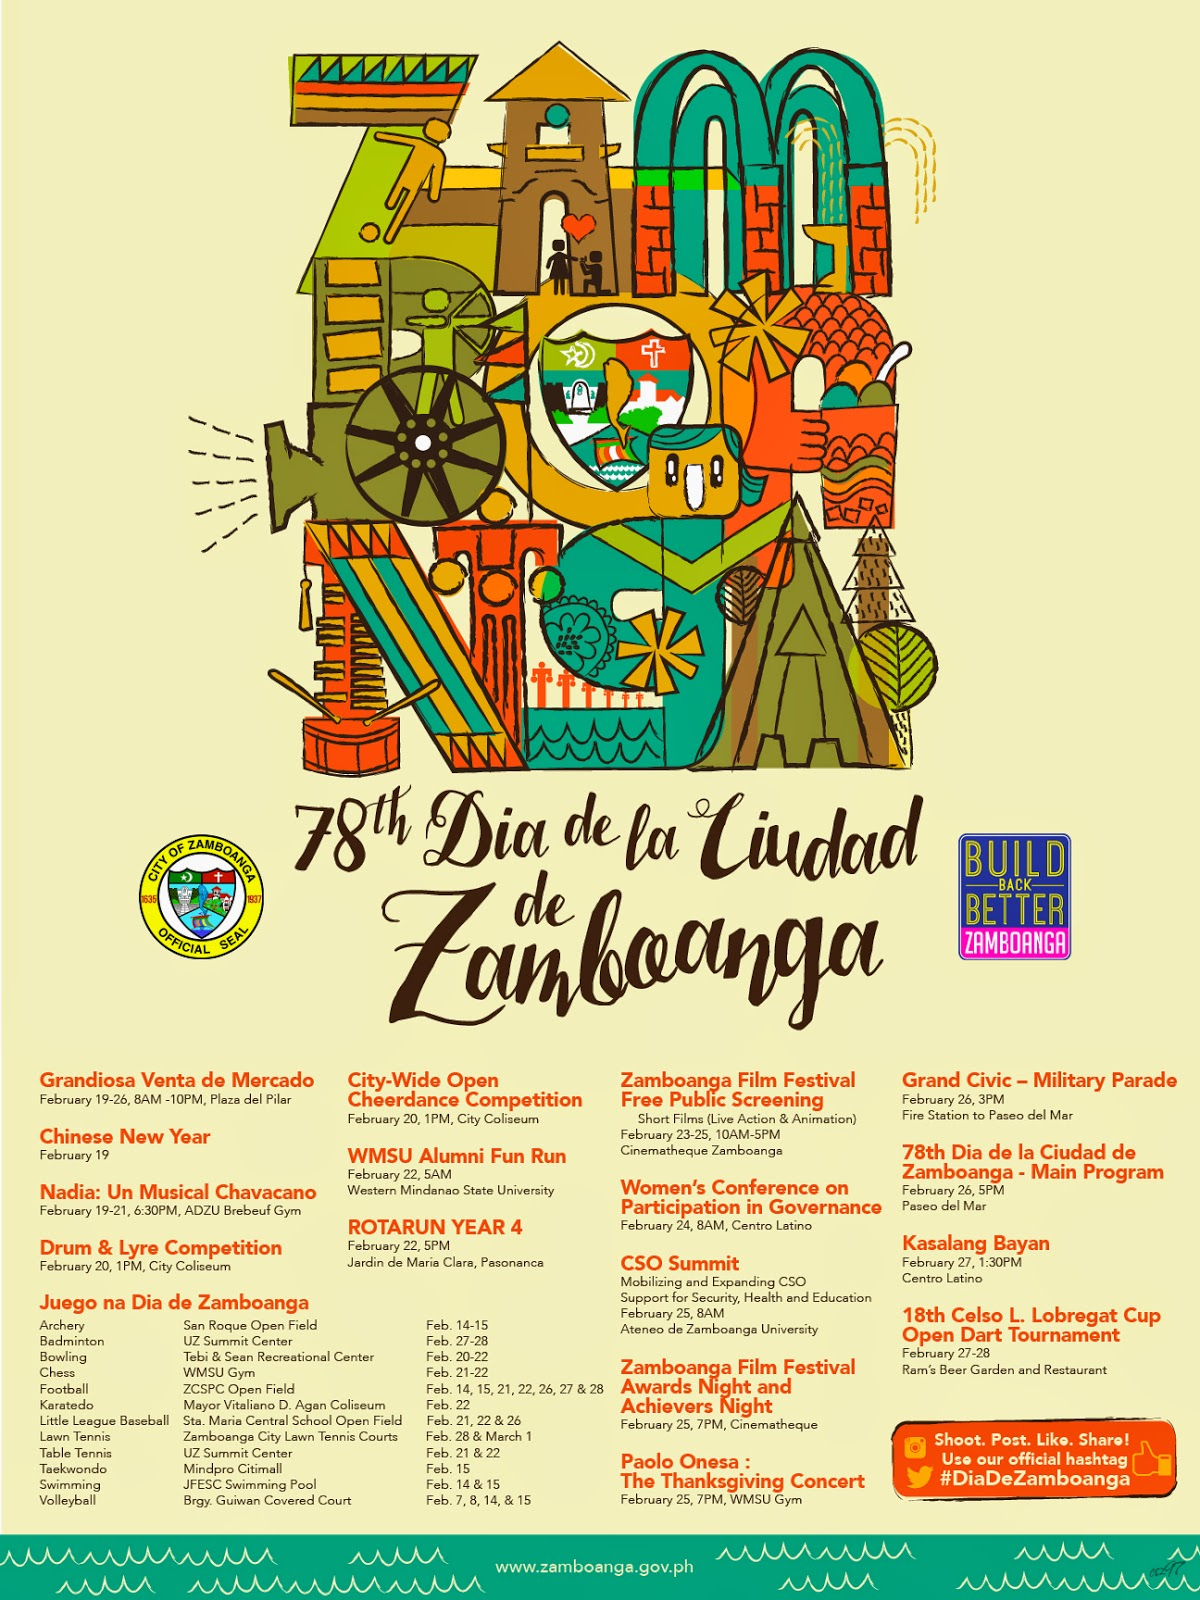 Dia de Zamboanga 2015 Poster Design Schedule List of Activities